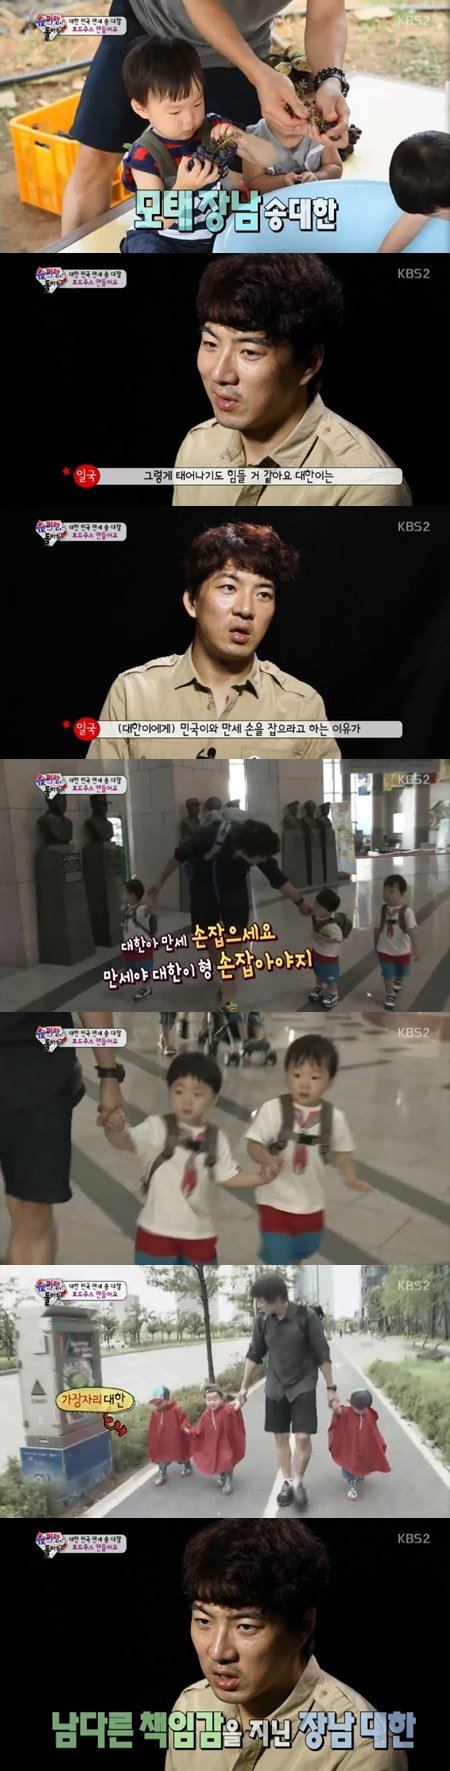 daehan superman returns